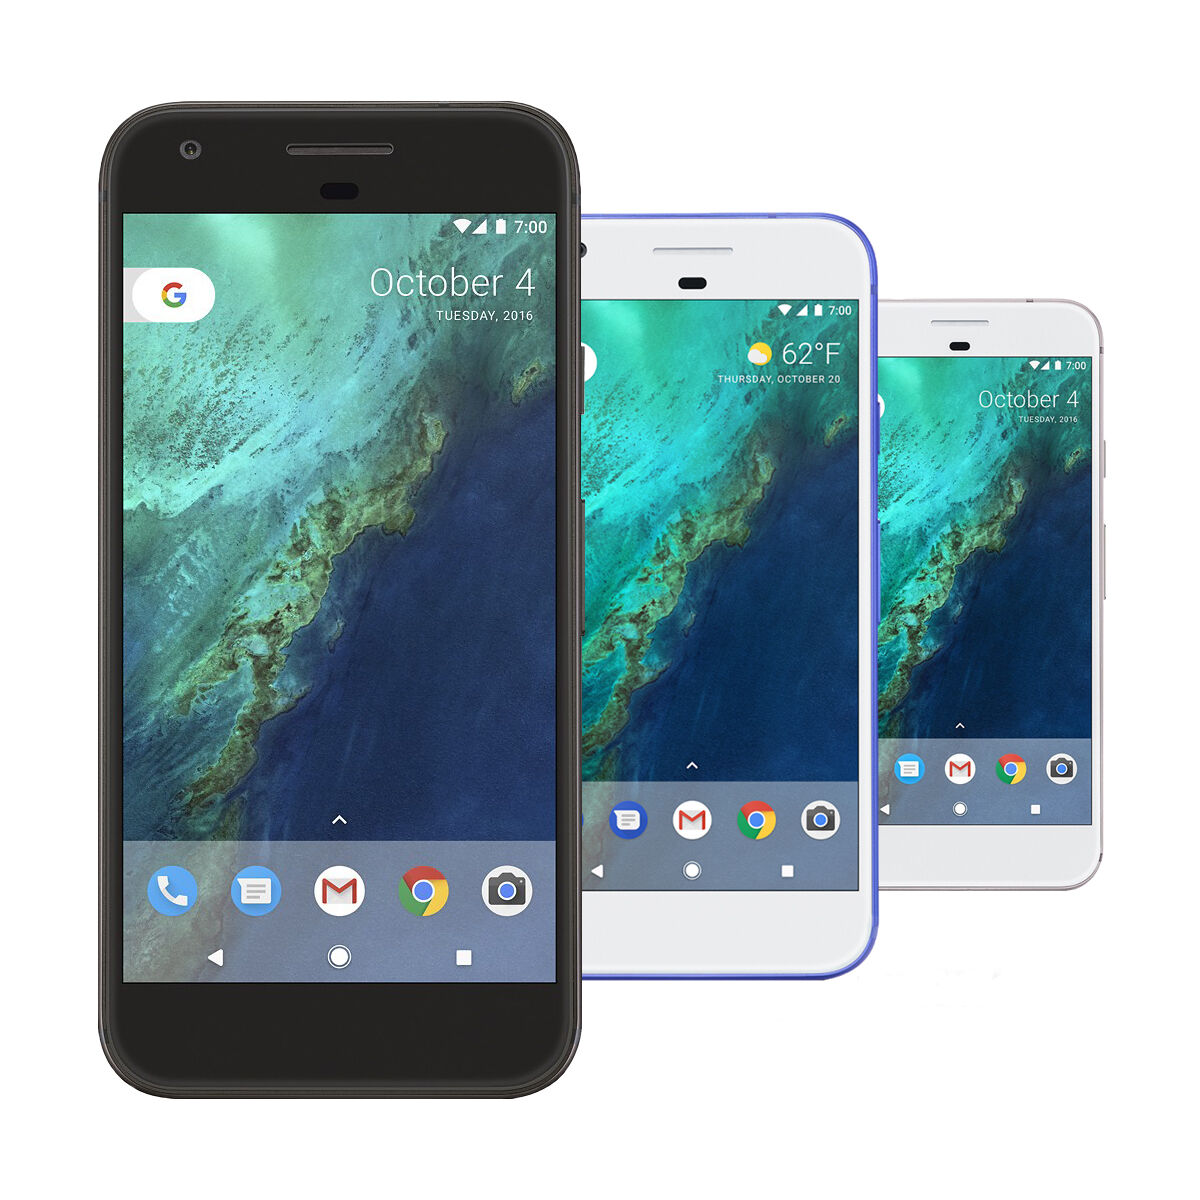 SELLER REFURBISHED GOOGLE PIXEL 32GB VERIZON WIRELESS 4G LTE ANDROID WIFI SMARTPHONE